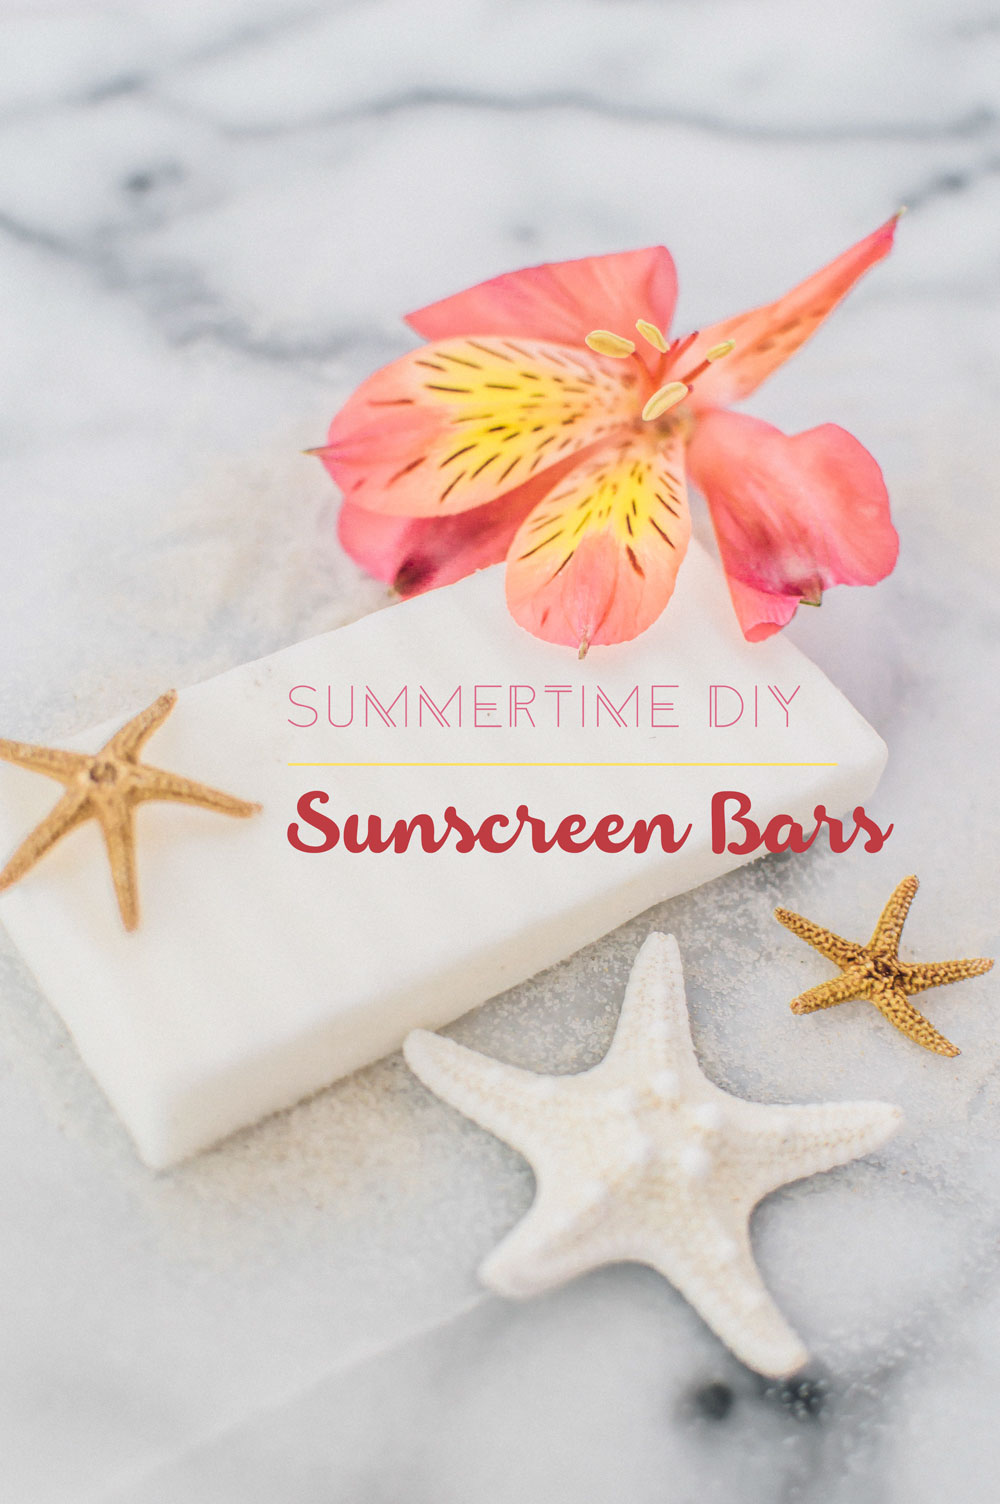 SunscreenBarRecipe